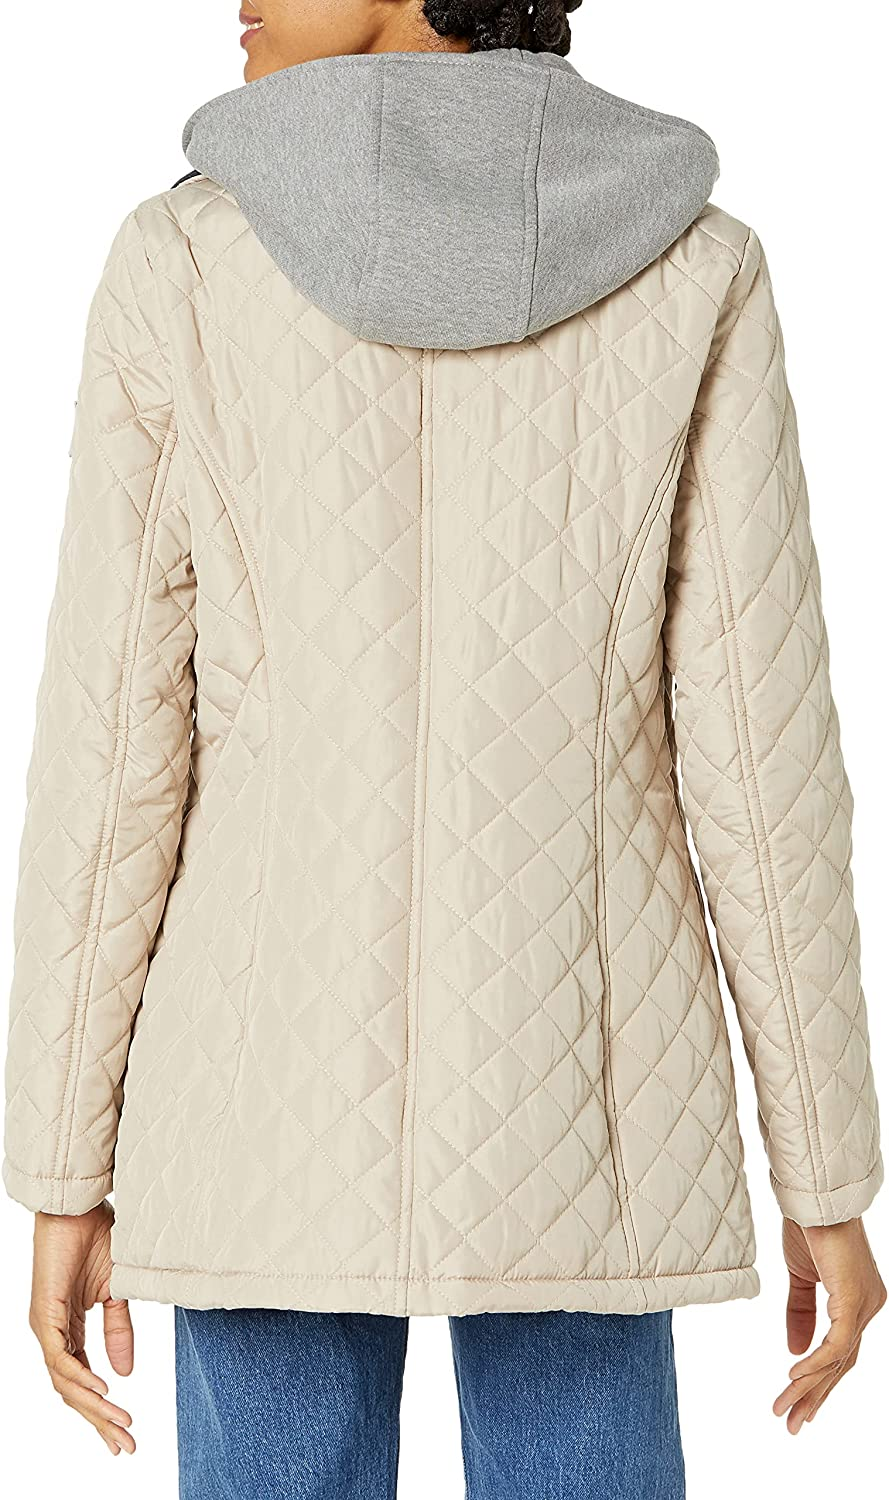 Tommy Hilfiger Women's Tommy Hilfer Quilted Jacket